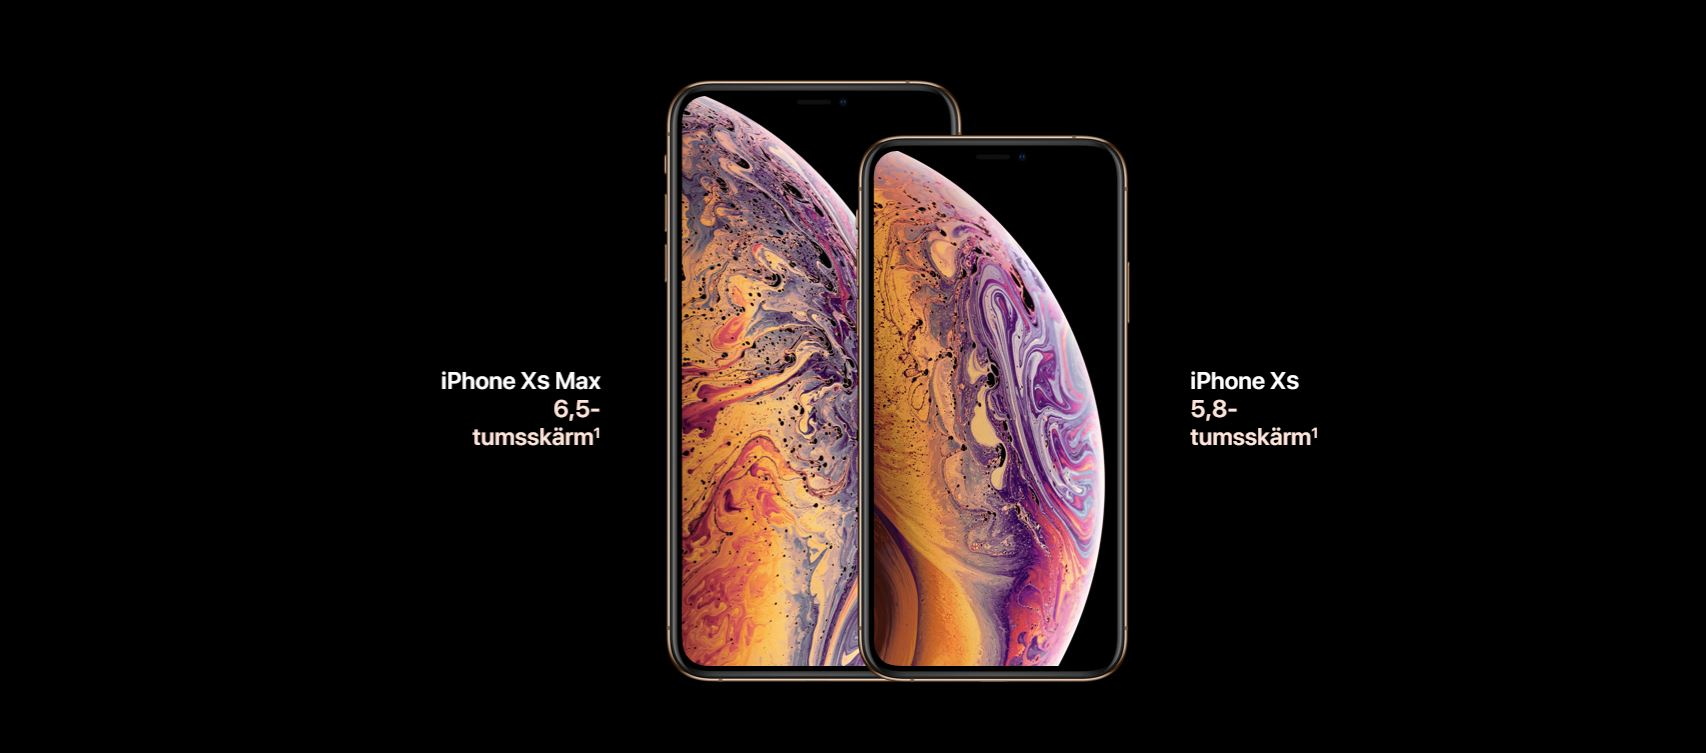 Jämför iPhone XS med iPhone XS Max